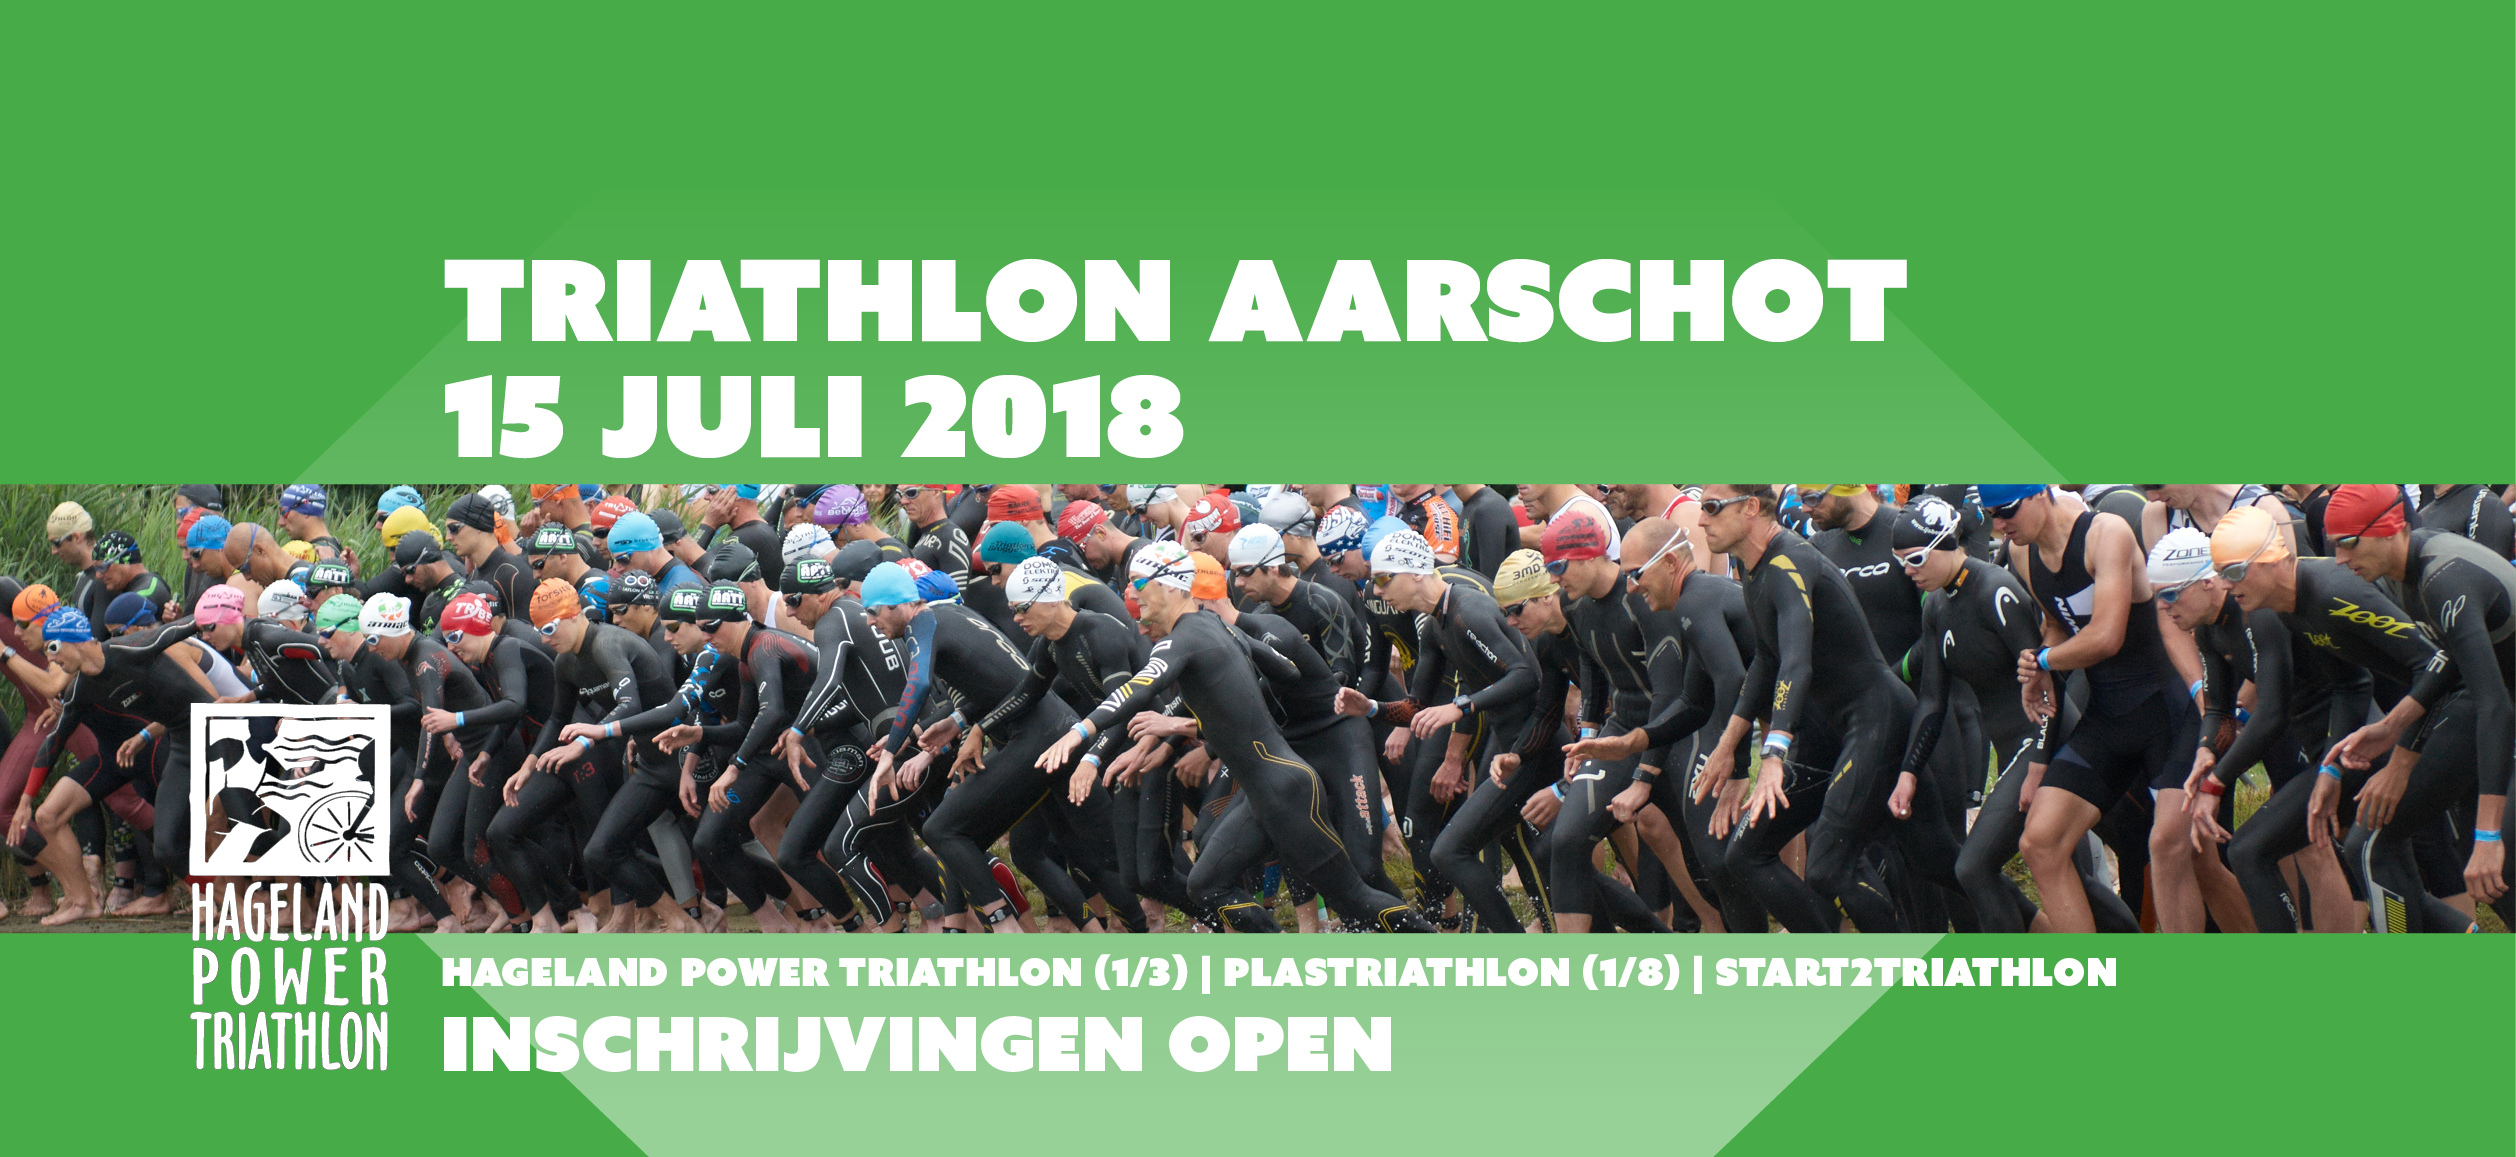 2018 Triathlon Aarschot